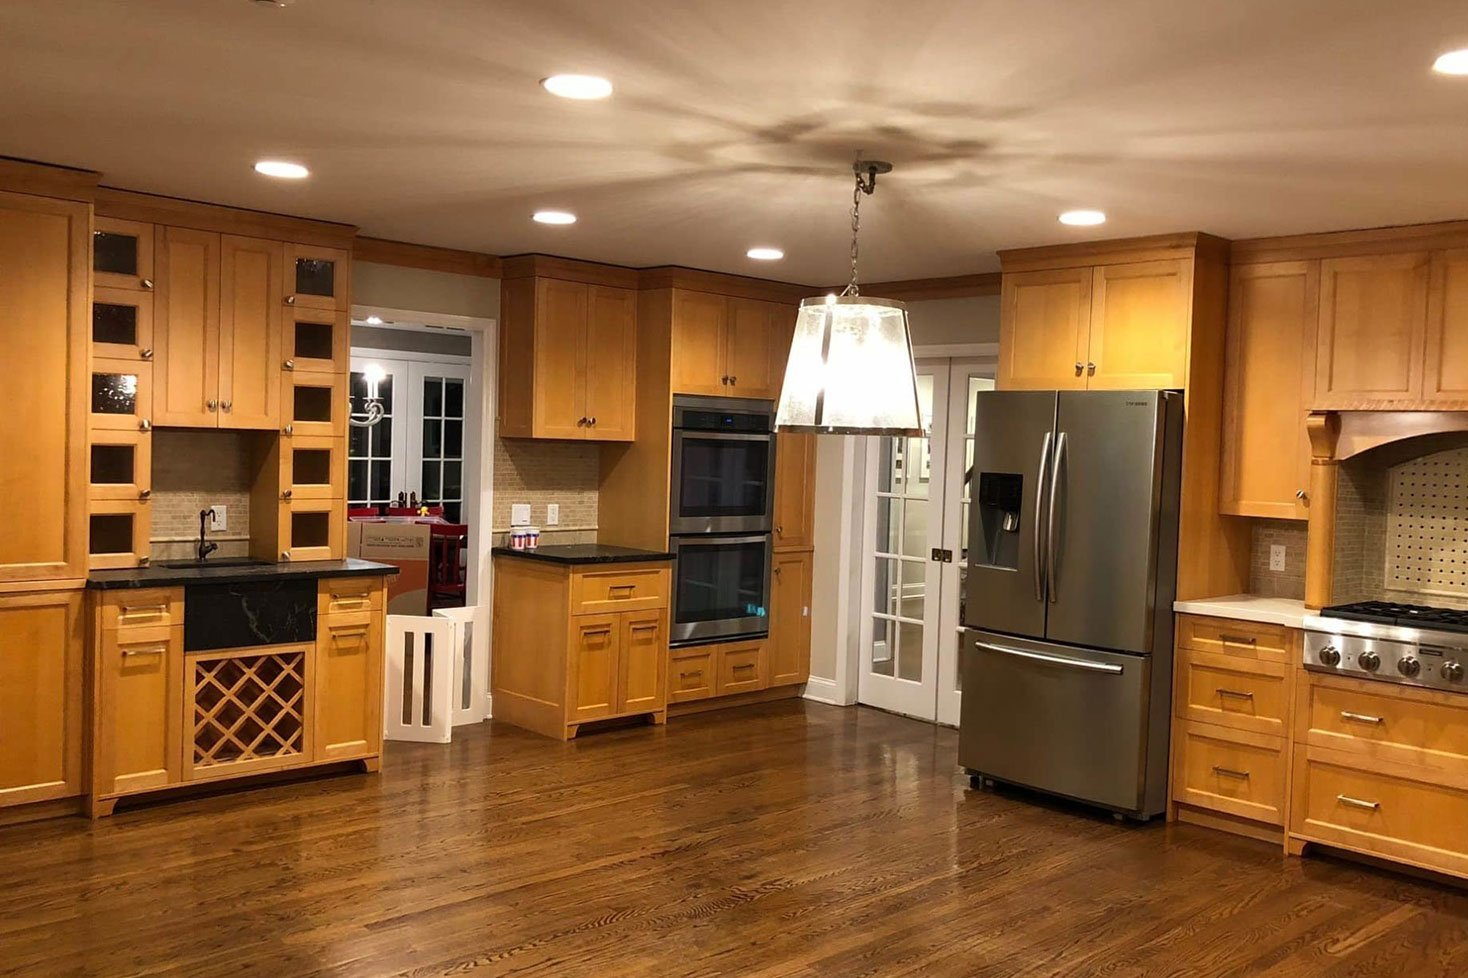 Finishing Touch Kitchen Remodel Before Shot